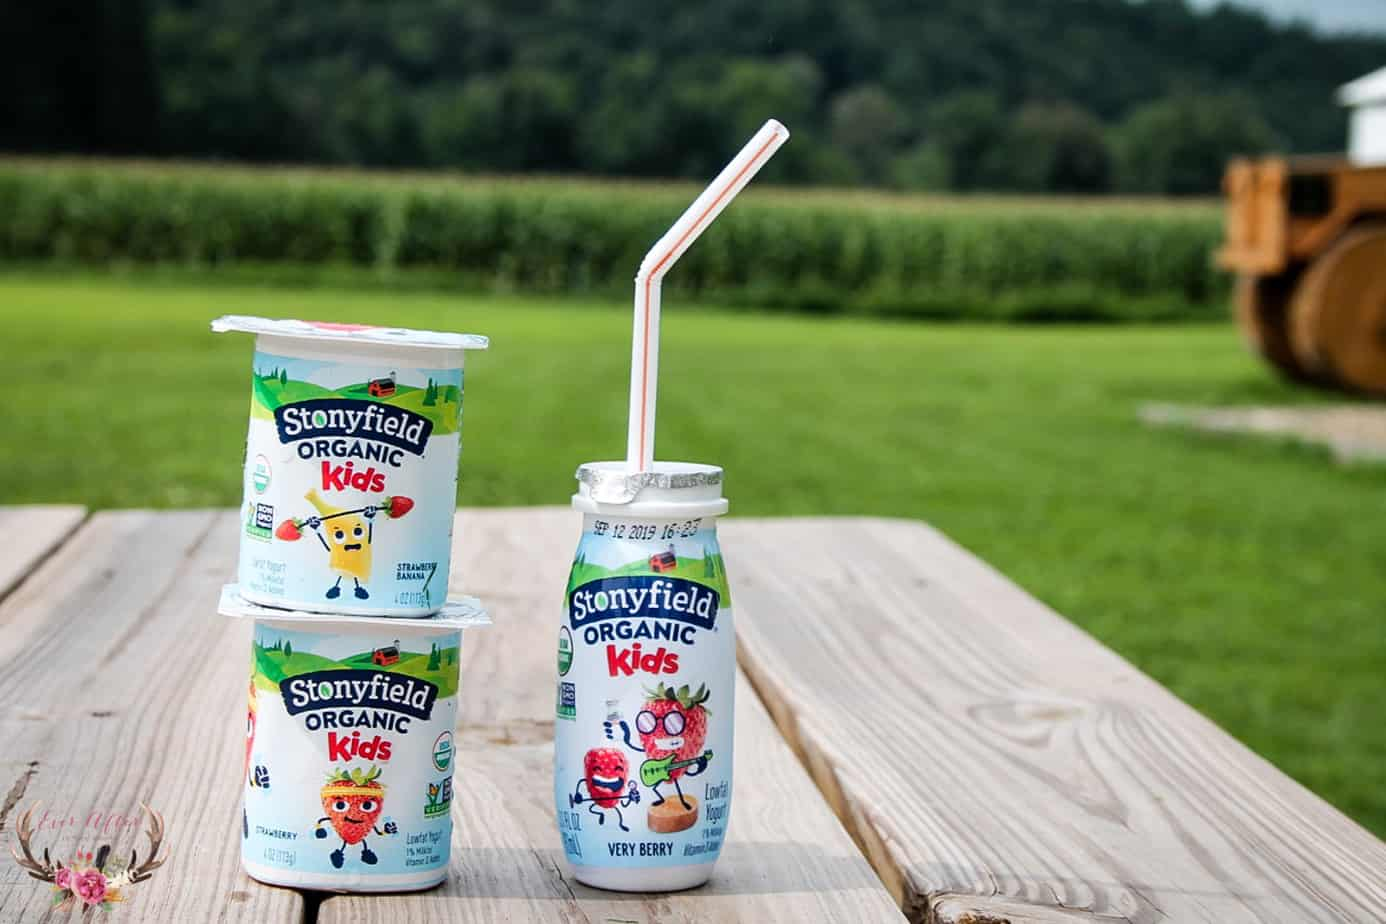 Stonyfield Organic products